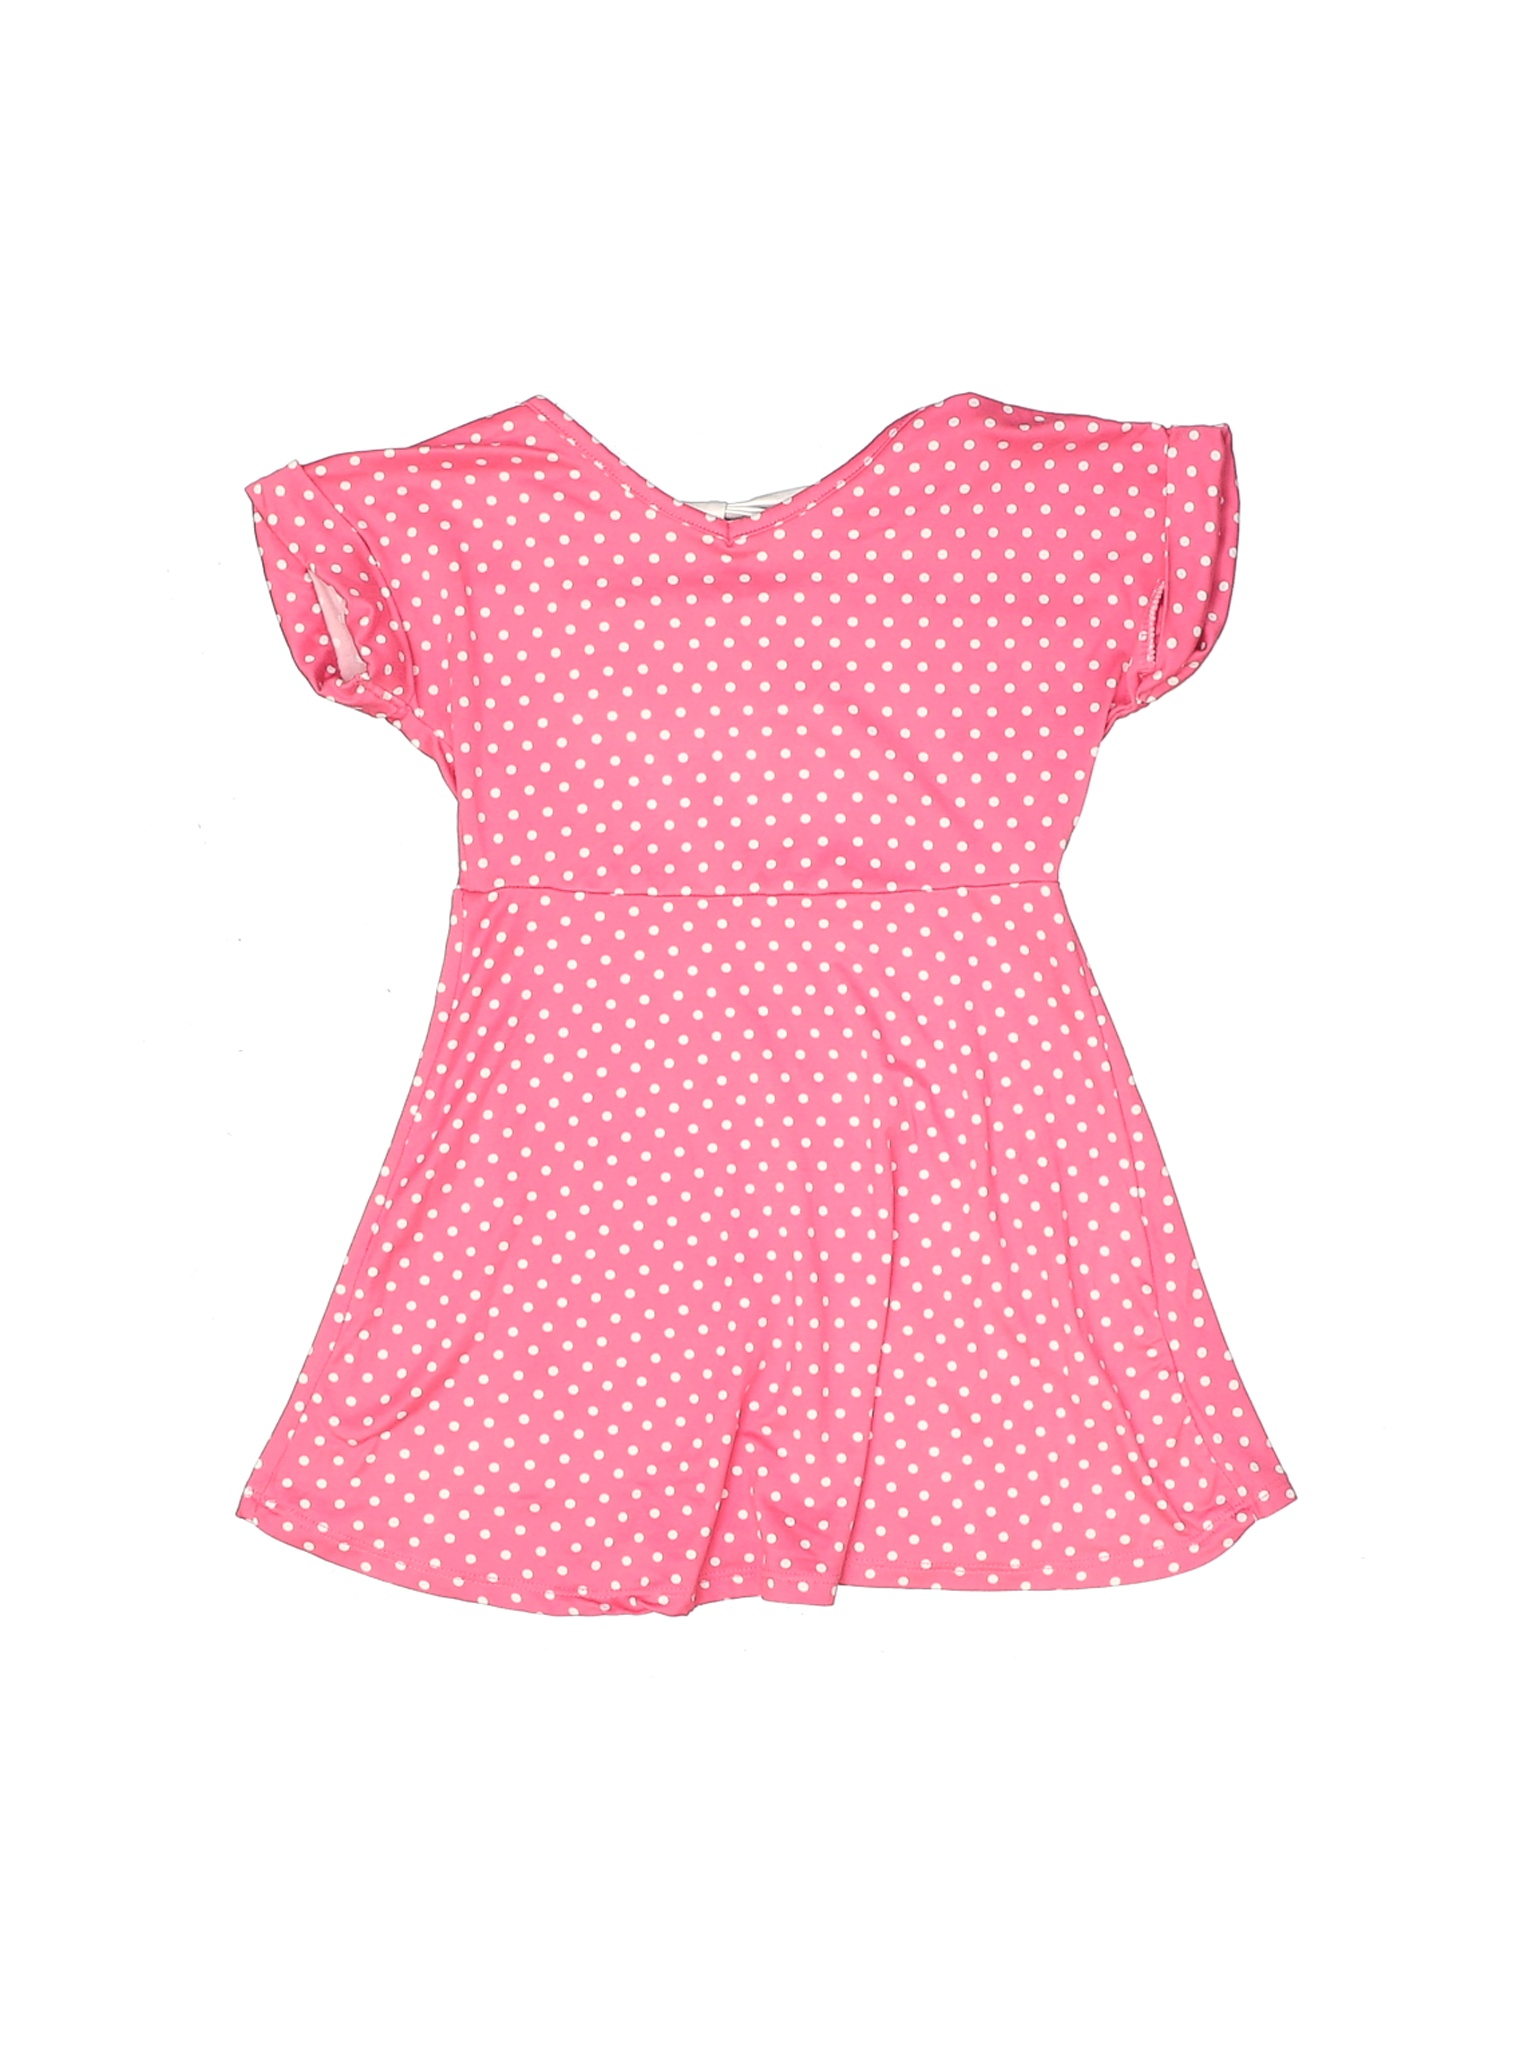 Limited Too Toddler Girls Romper Sz 12month Butterfly Sleeveless